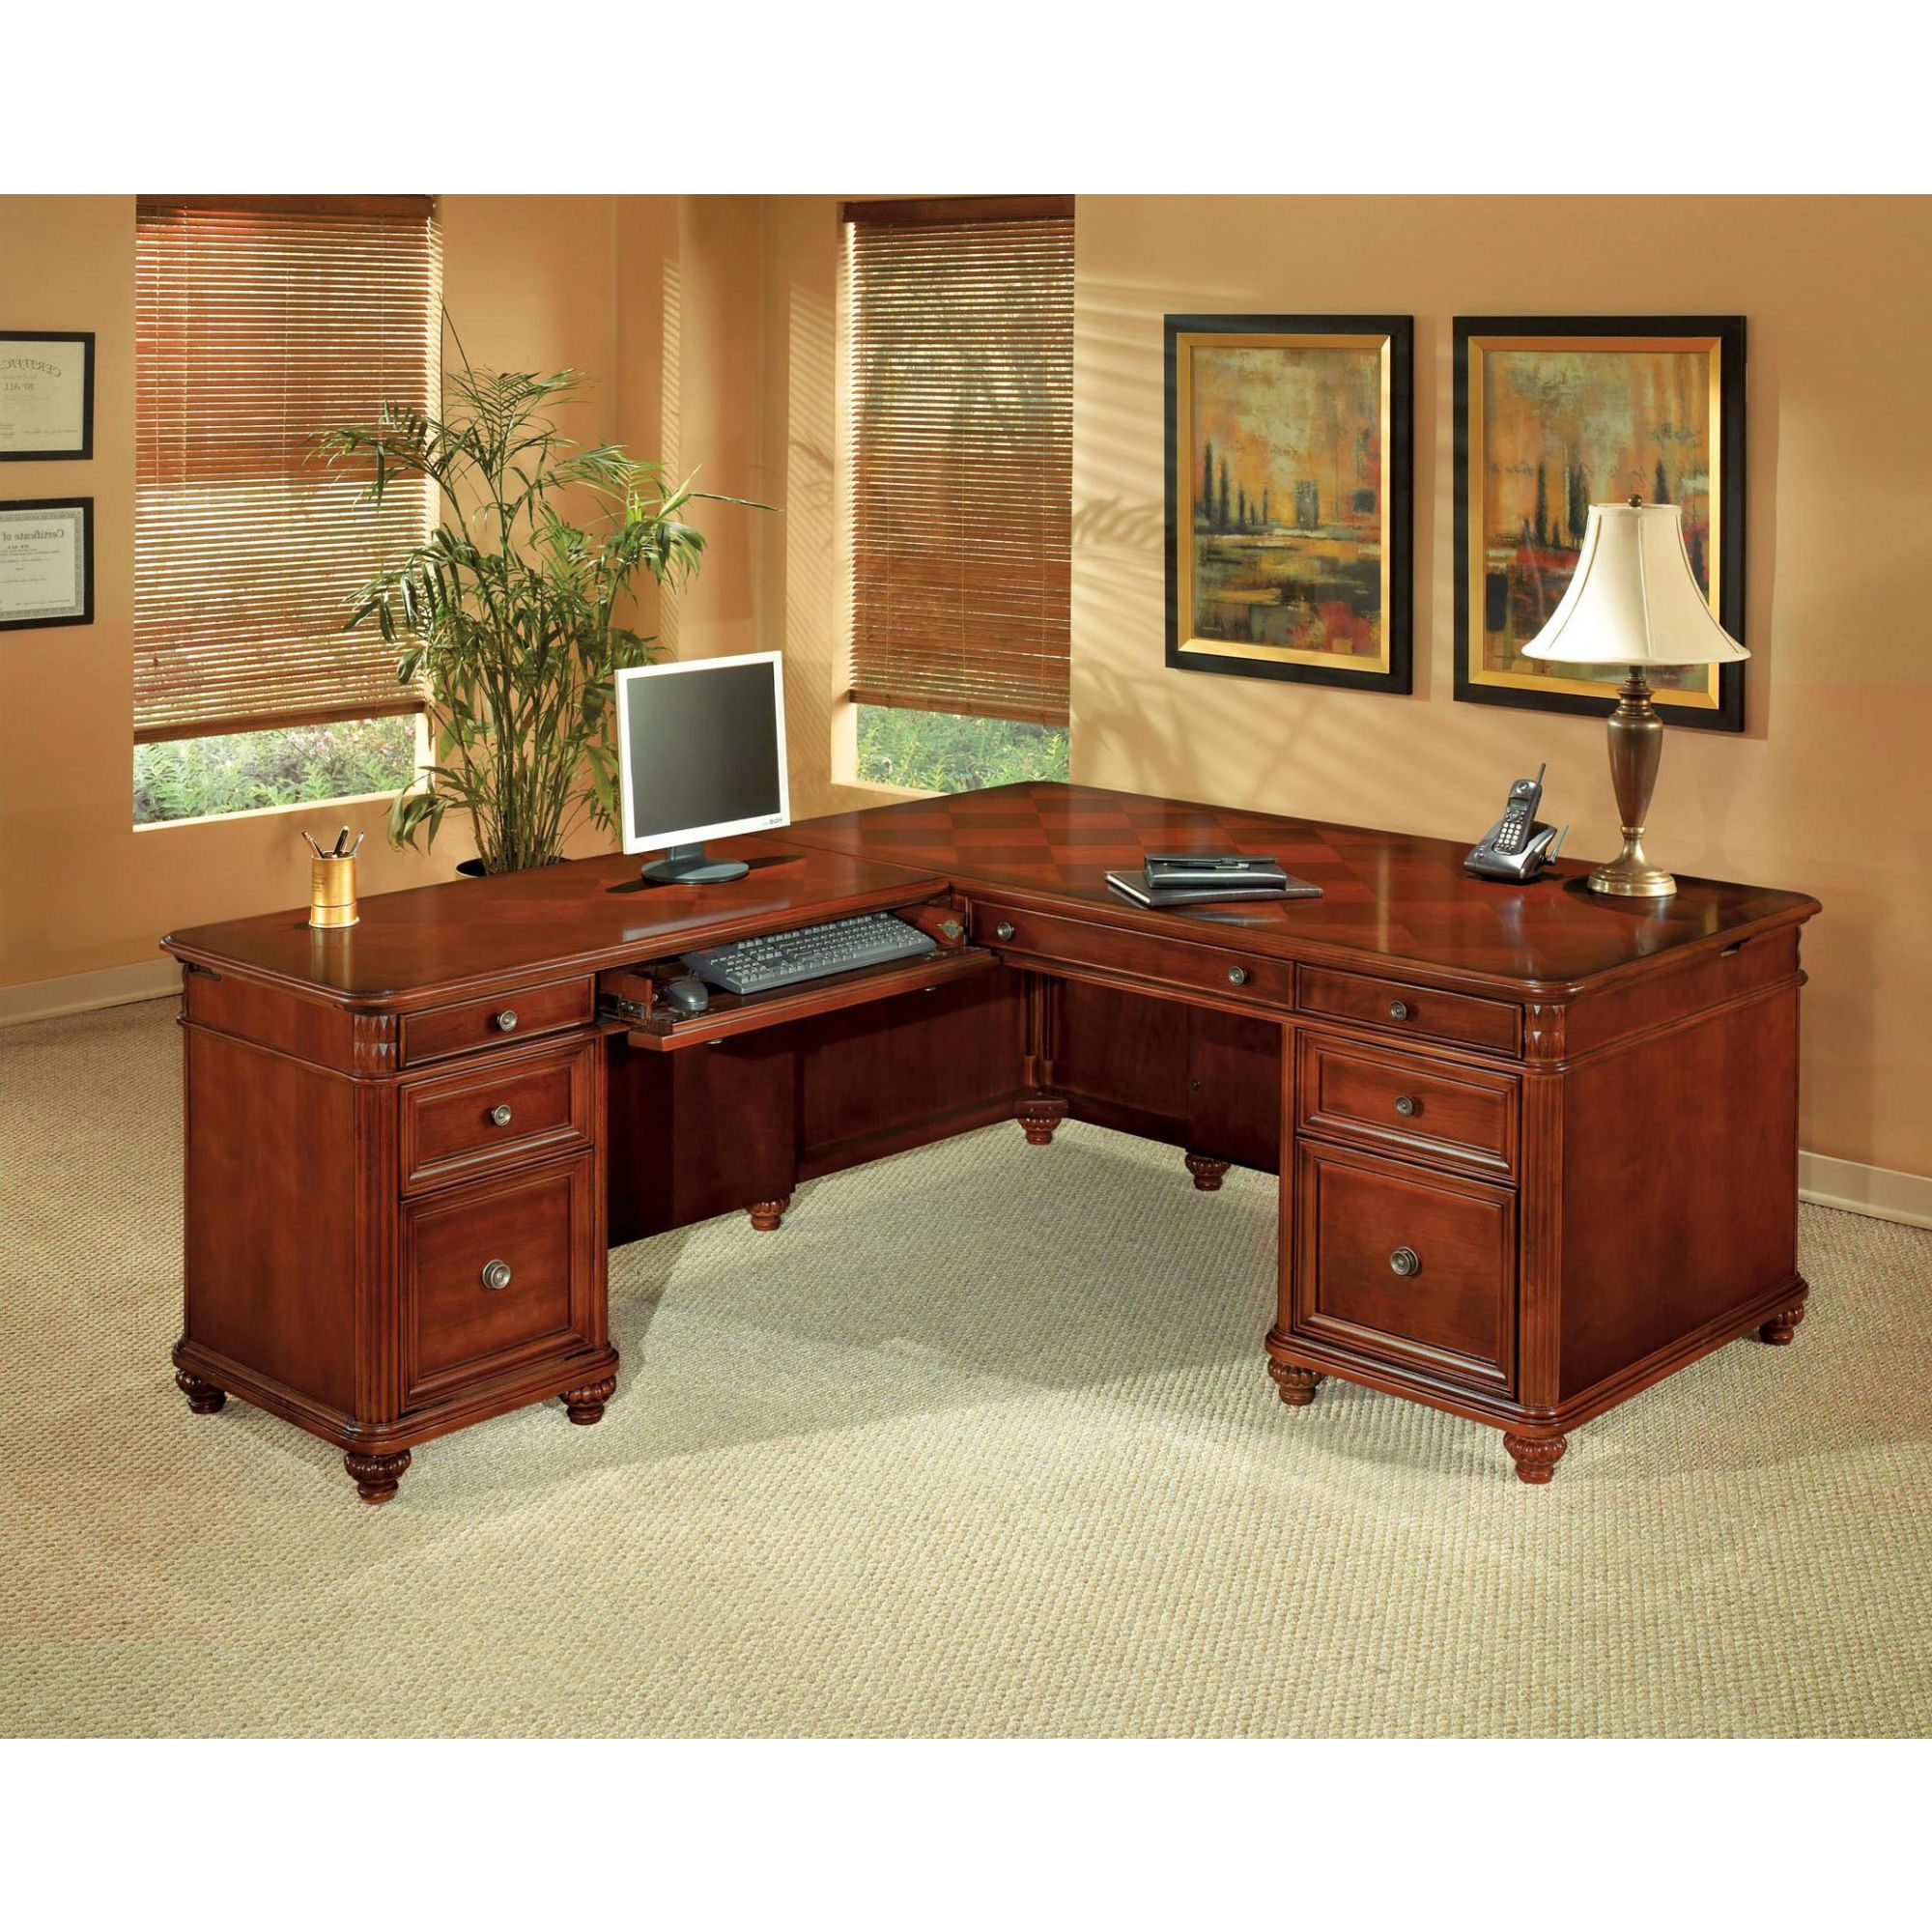 desk furniture office owned dmi crown pre executive product bernheim resized